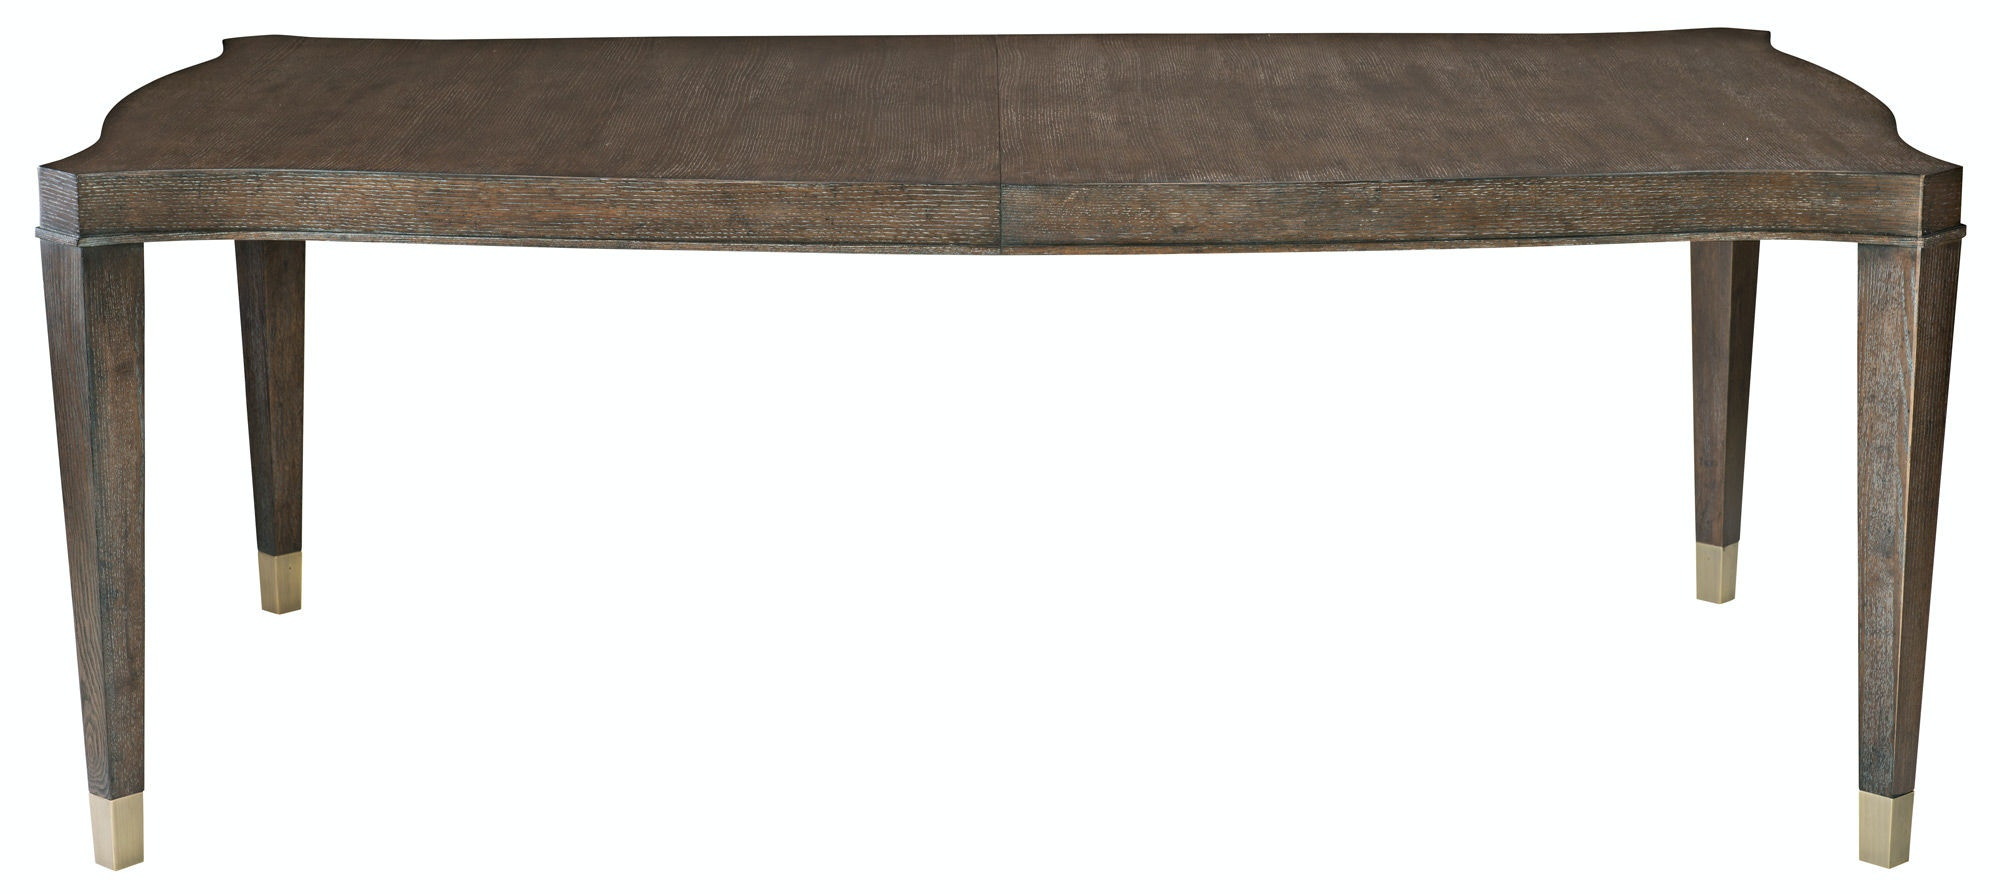 Bernhardt Dining Table 549473